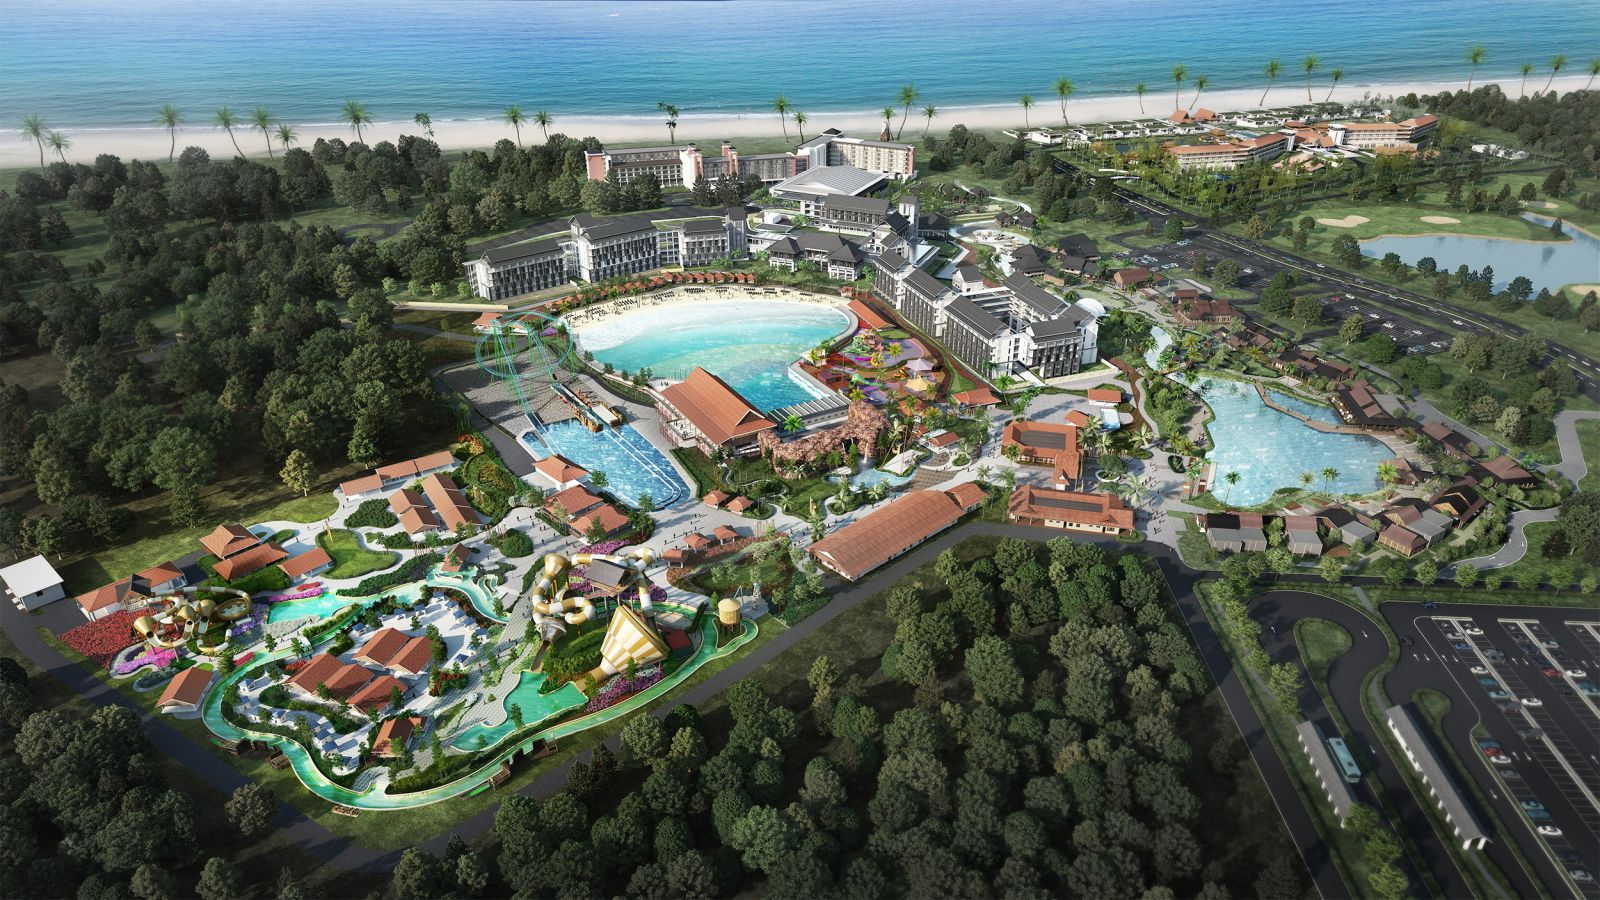 An aerial shot of the Desaru Coast Adventure Waterpark